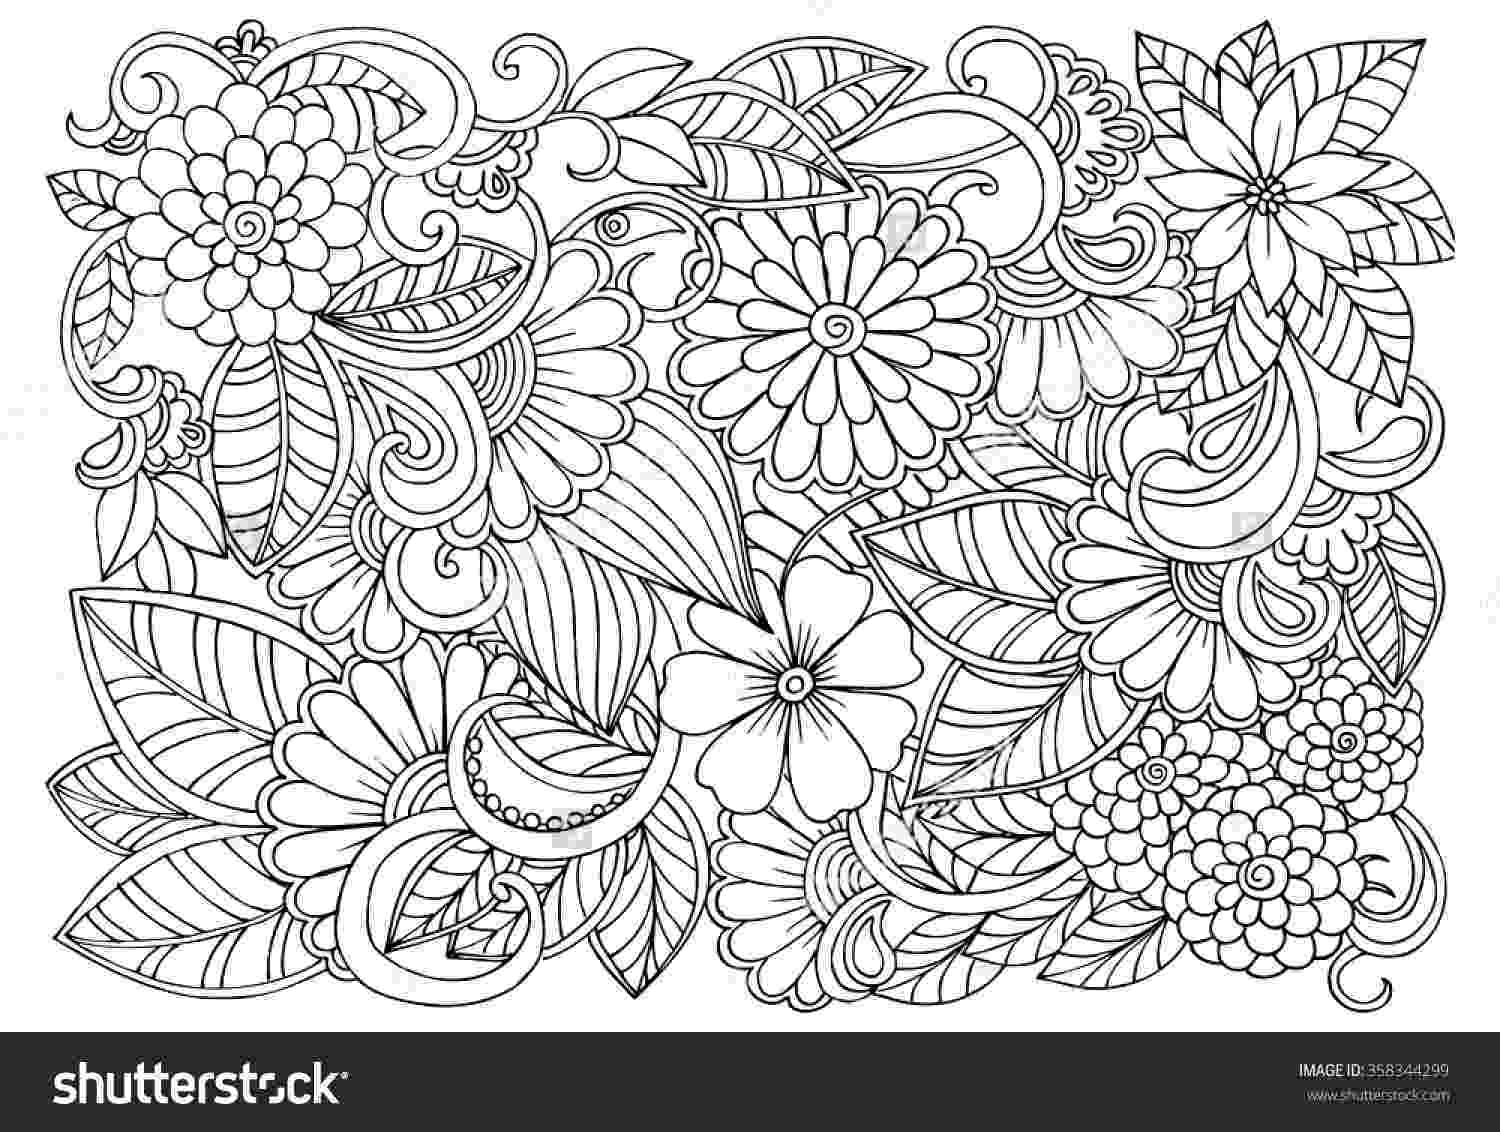 flower patterns coloring book flower coloring page flower 86 color it abstract coloring flower patterns book